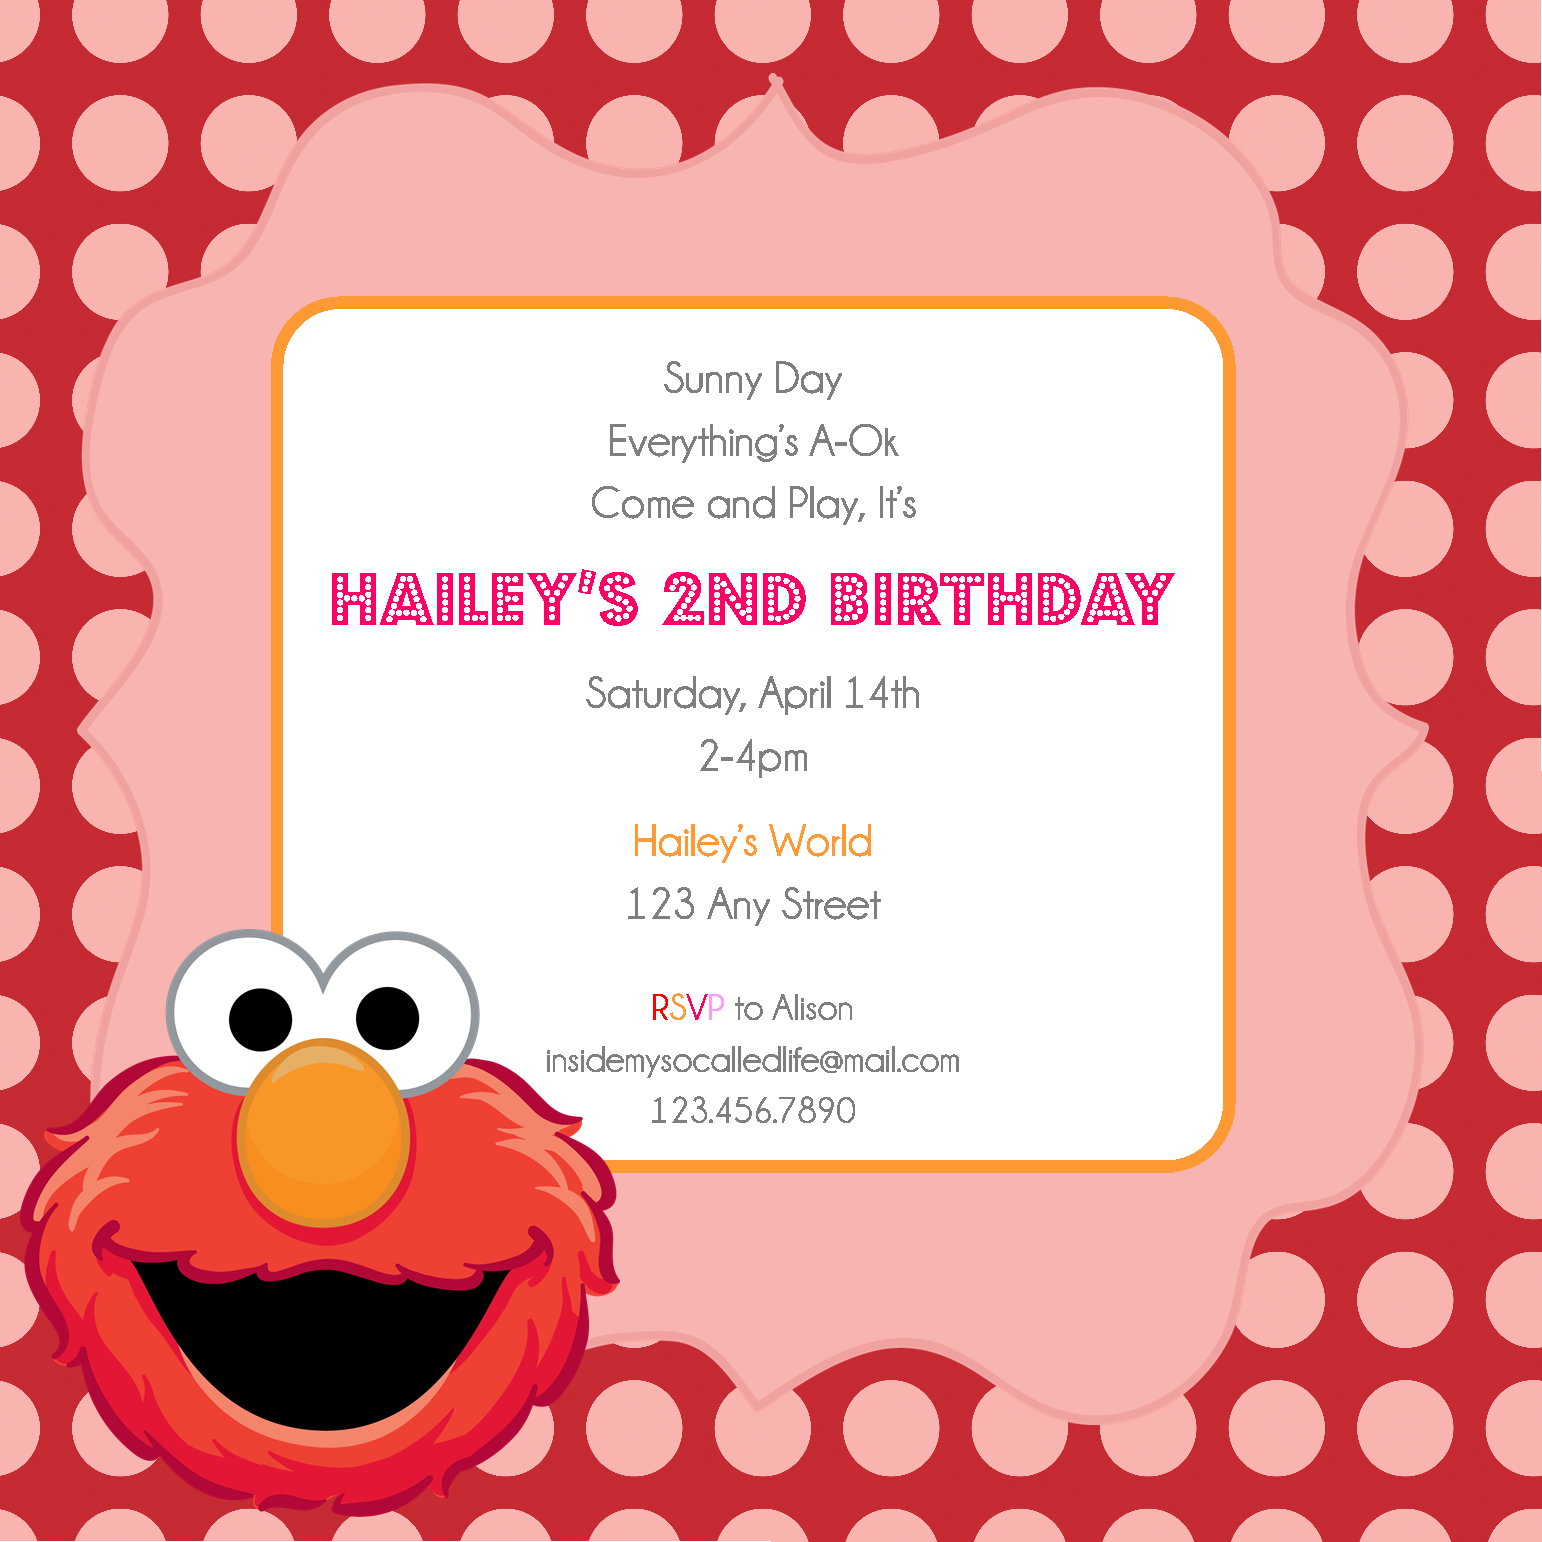 doc 585436 format for birthday invitation birthday invitation nursing assistant resume objectivedoc585436 format for birthday format for birthday invitation